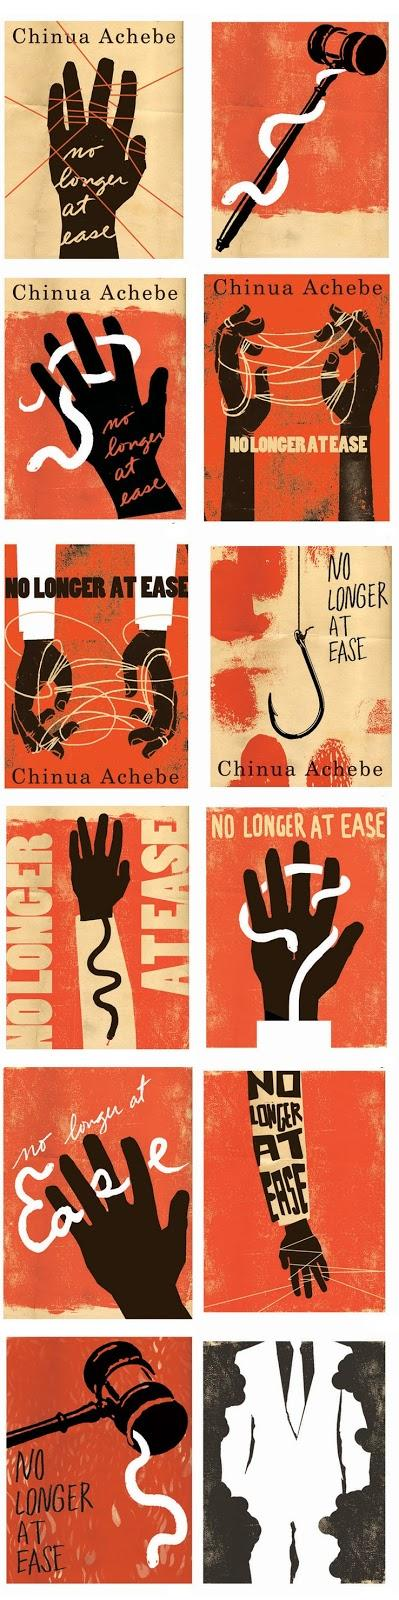 no longer at ease by chinua achebe pdf